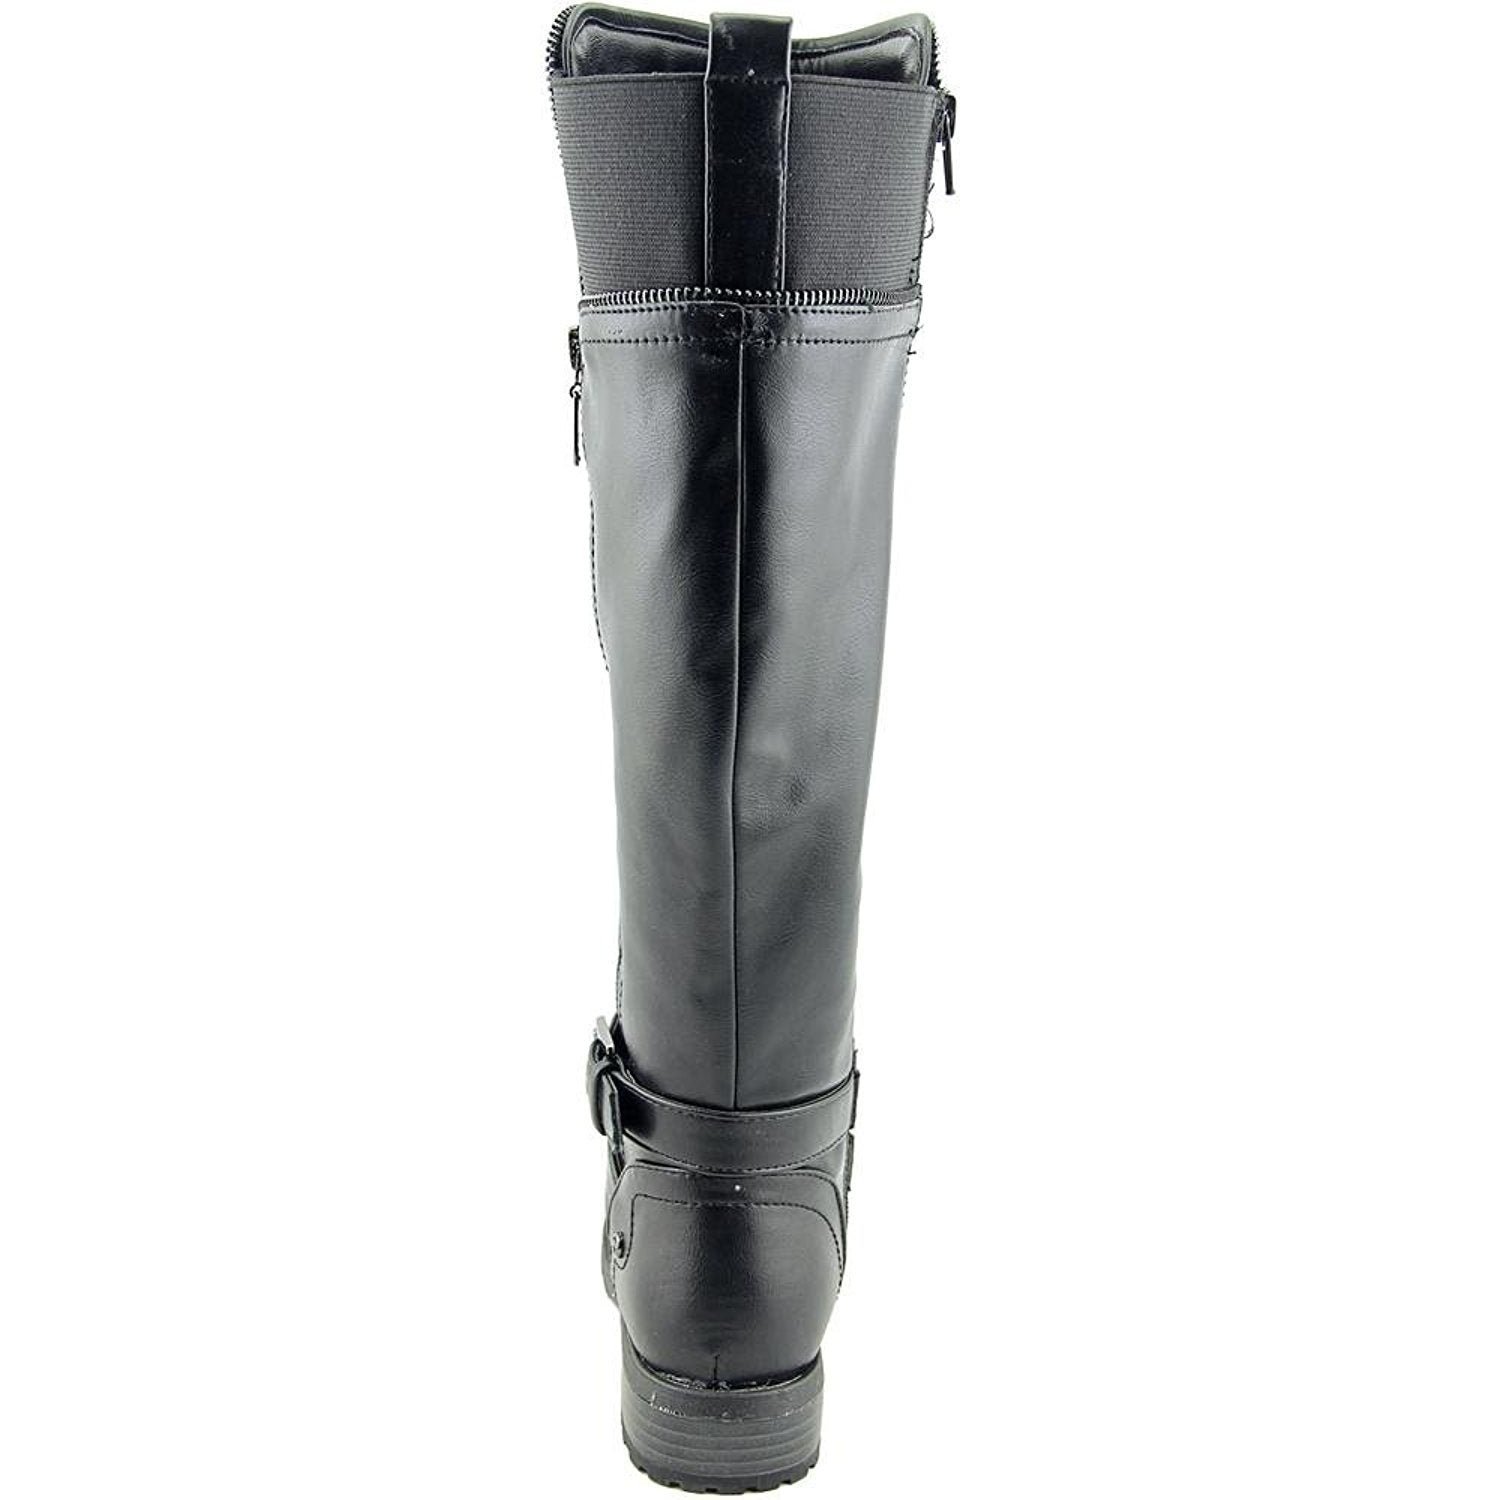 4837dbd0aaf1 Shop GUESS Womens Halsey Wide Calf Closed Toe Knee High Fashion Boots -  Free Shipping On Orders Over  45 - Overstock - 16271535